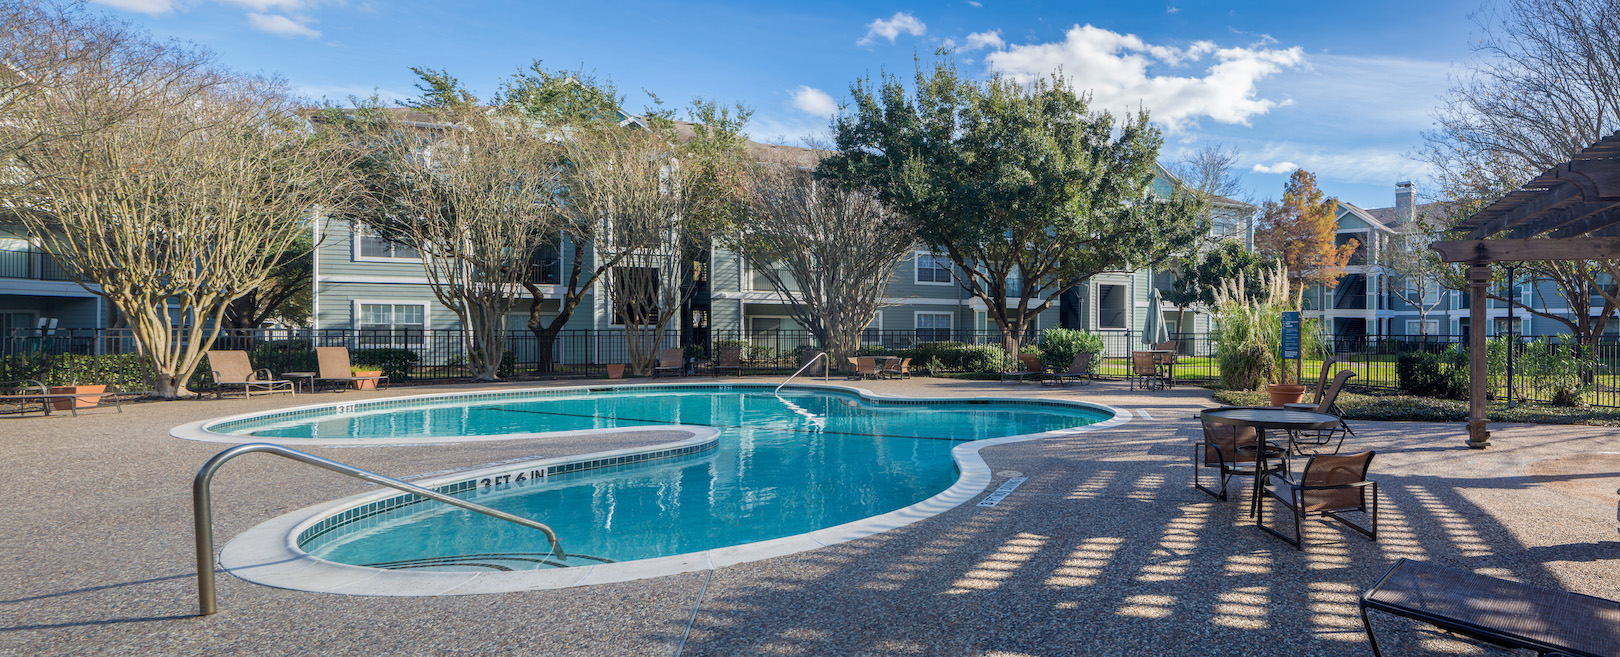 Resort-Style Pool at The Link, a Community of Luxury Apartments in Houston, Texas